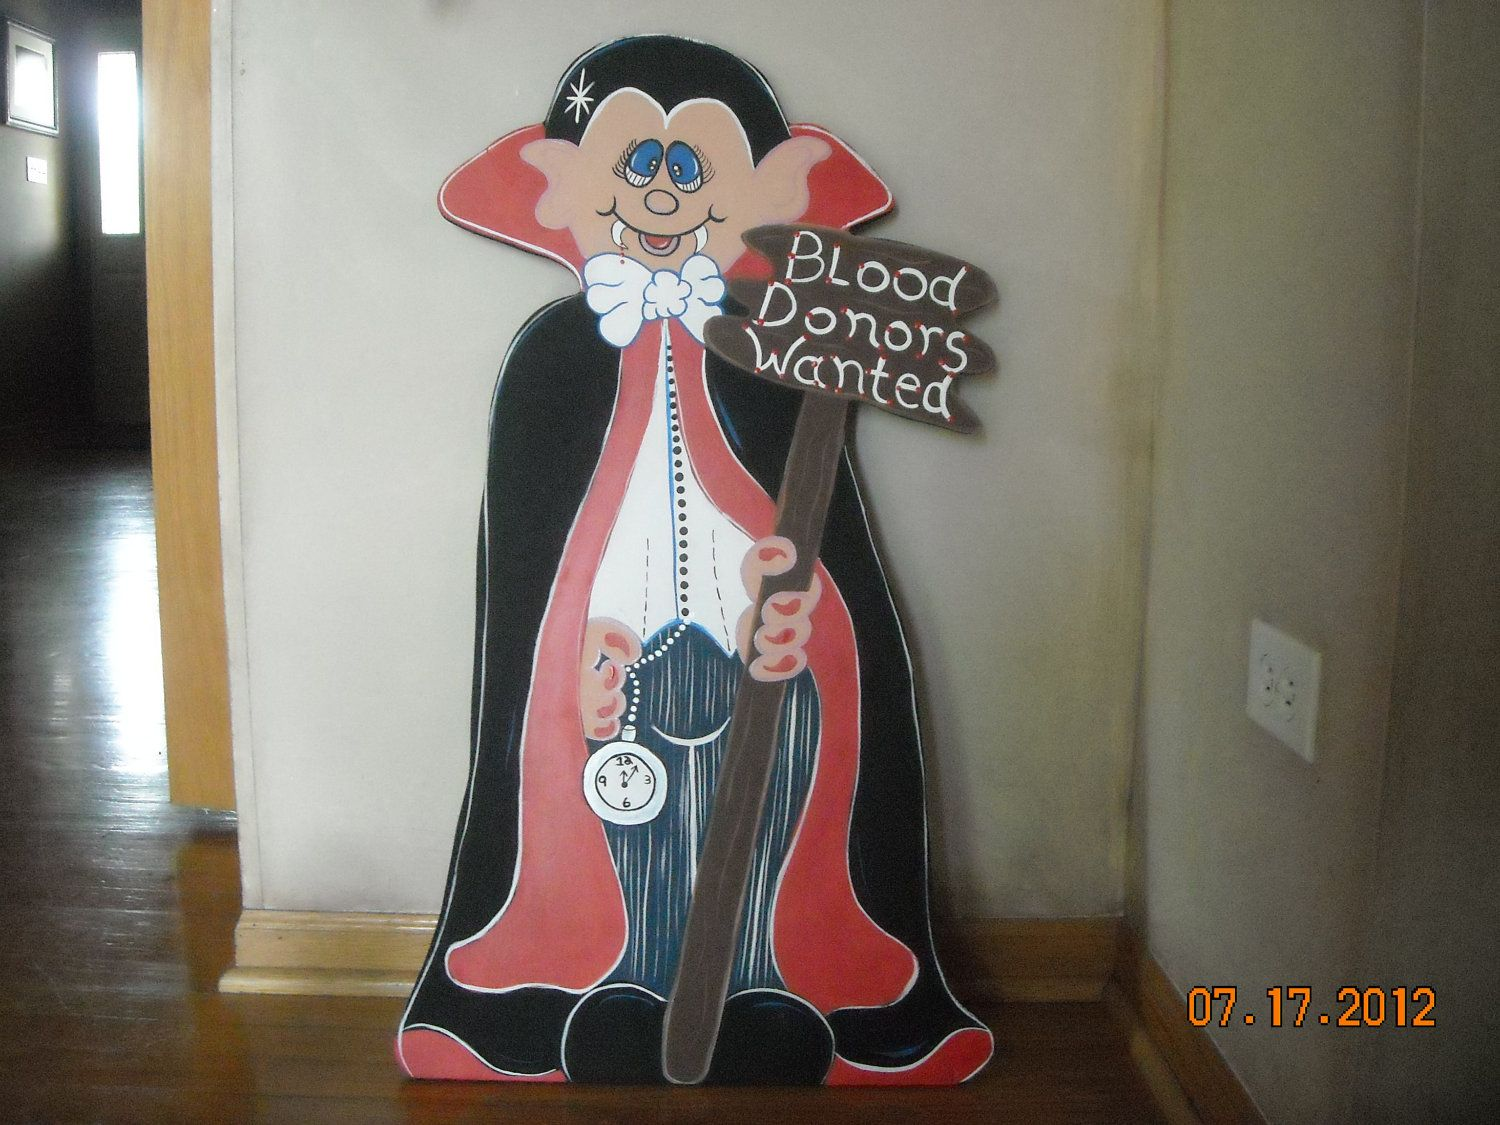 Wooden halloween yard decorations - Dracula For Halloween Blood Donors Wanted Wood Lawn Ornament Yard Art 40 00